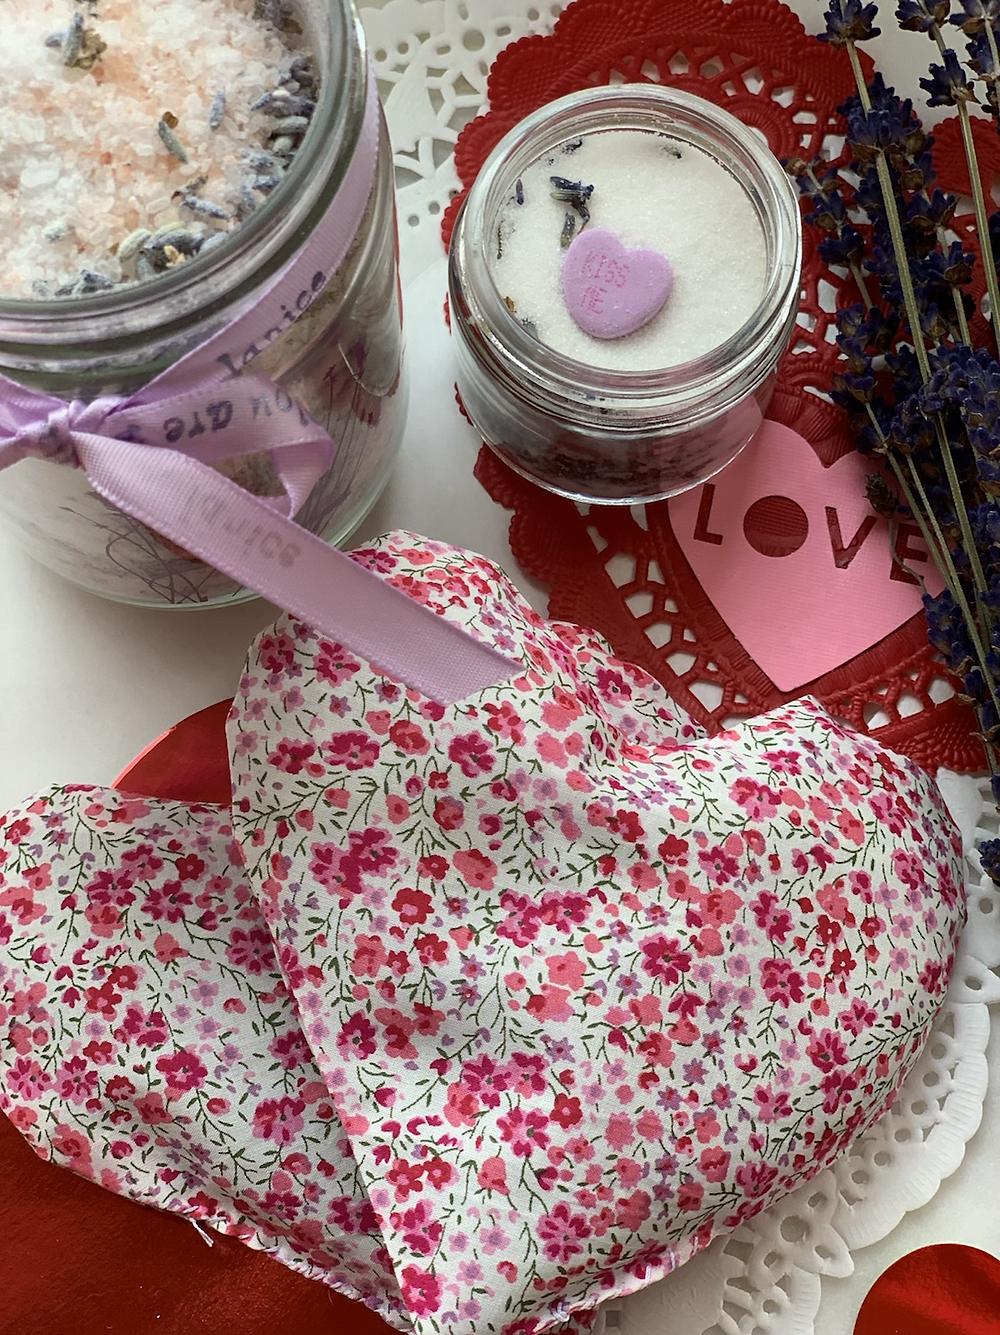 Homemade bodycare products for Valentine's day gifts